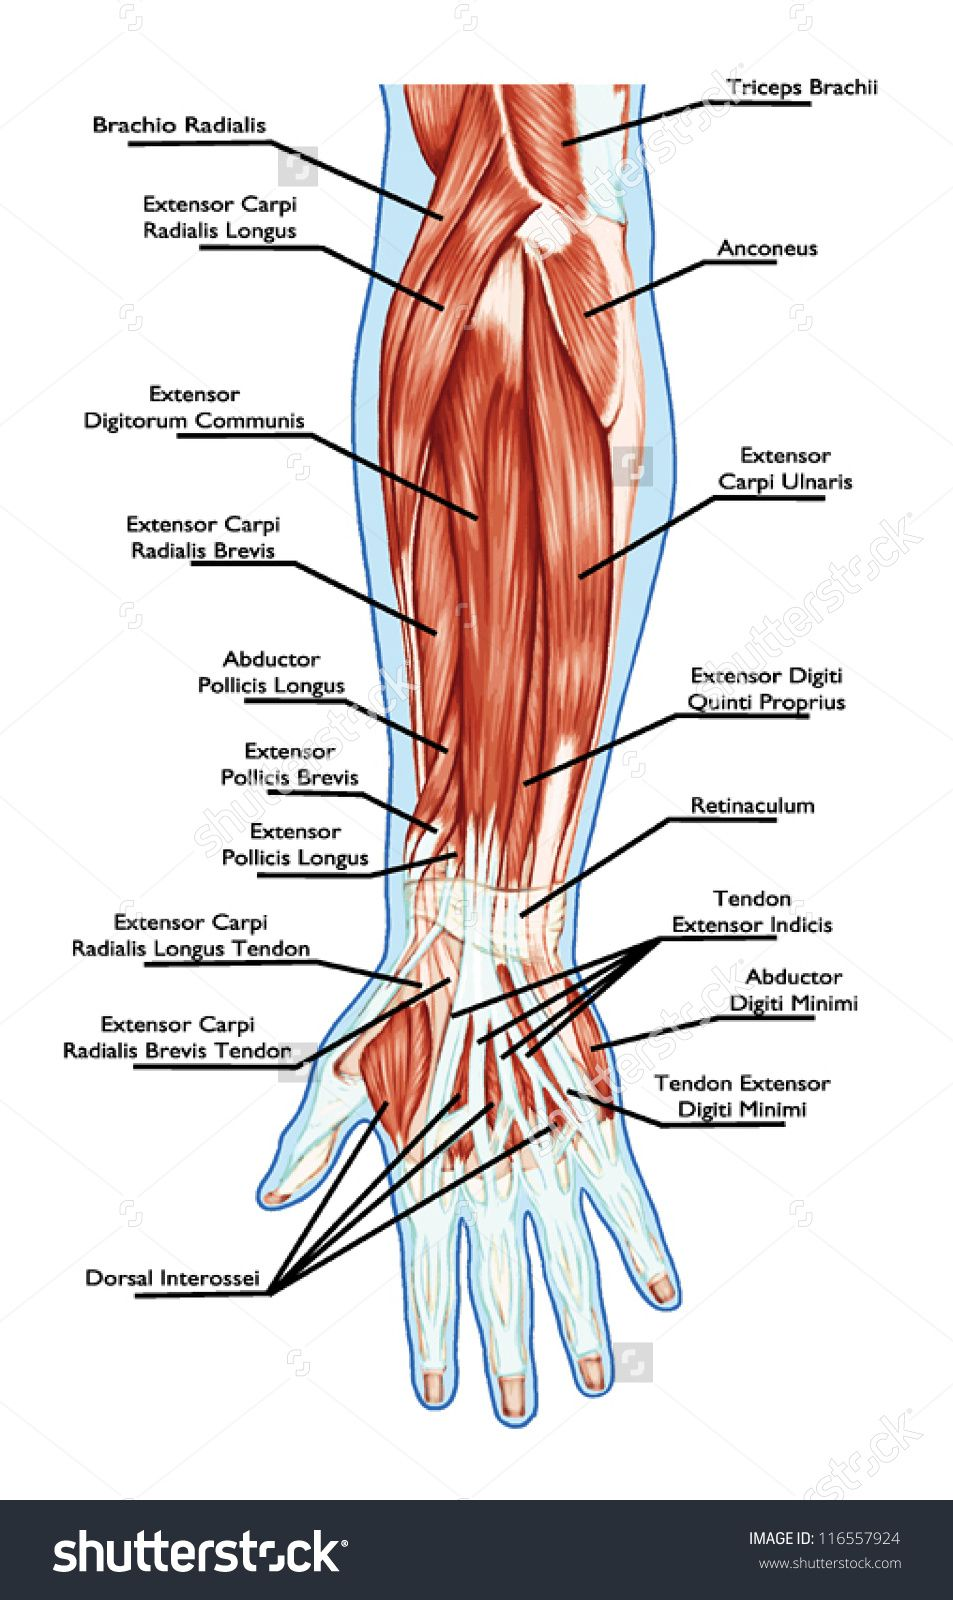 Carpus bones pinterest coloring muscle and hand anatomy - Anatomy Of Muscular System Hand Forearm Palm Muscle